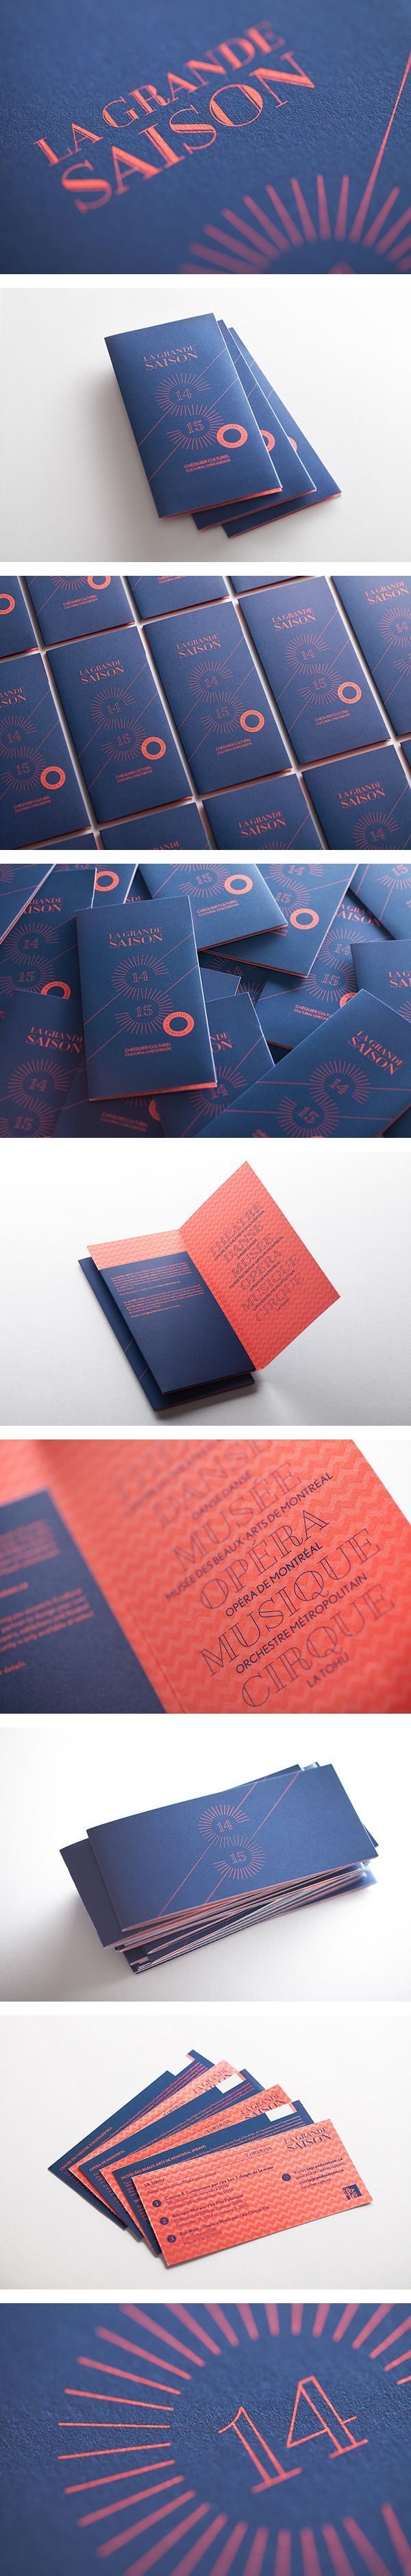 I like the combination of orange and blue, with a but of a luxury feel La grande…